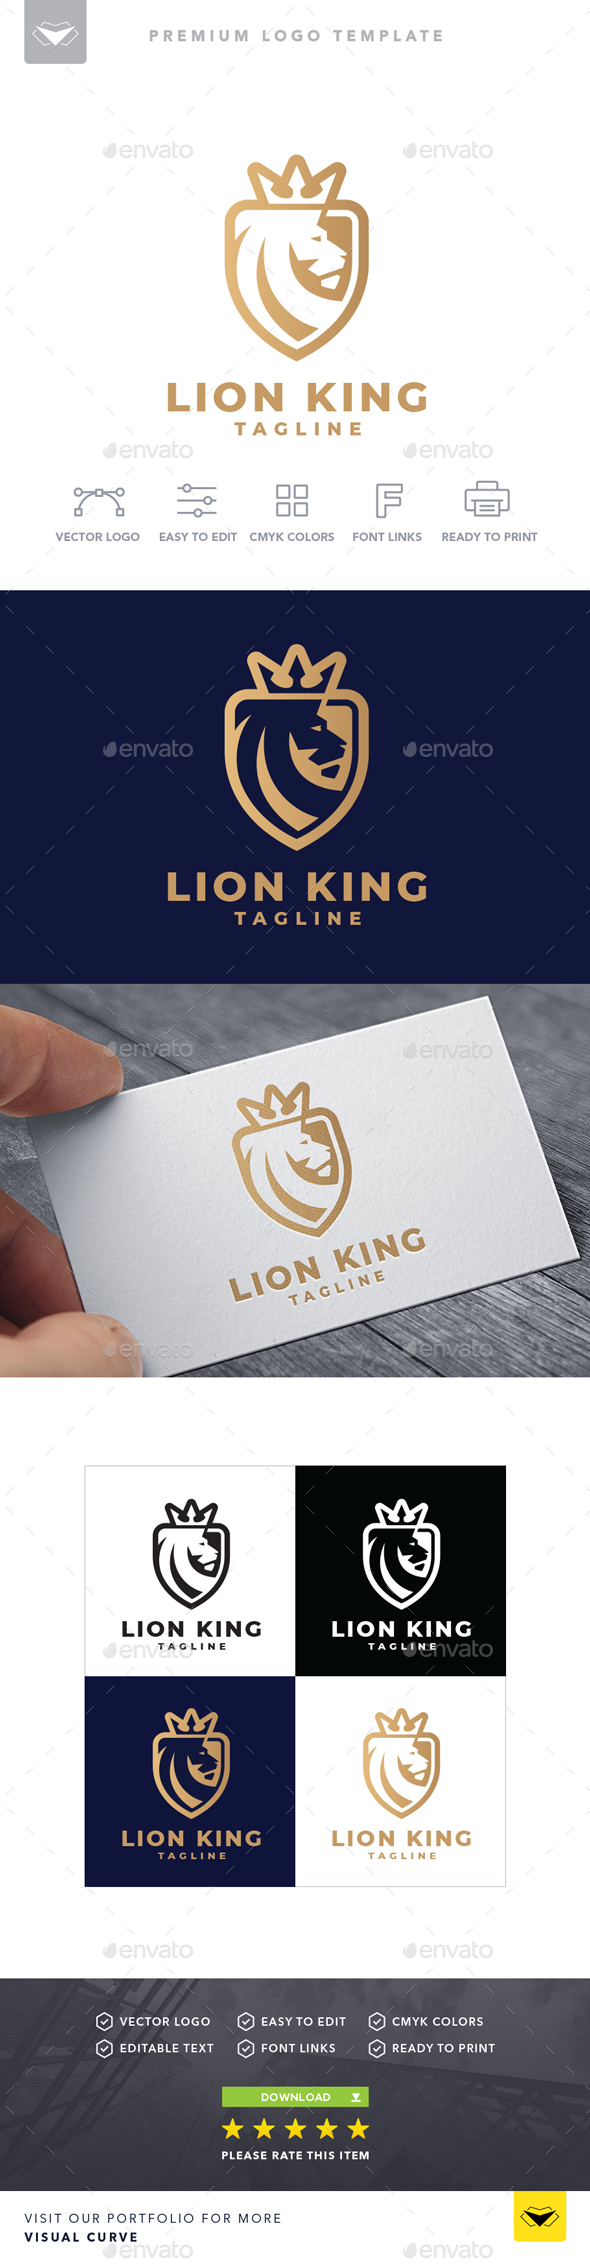 Lion King Logo - Logo Templates